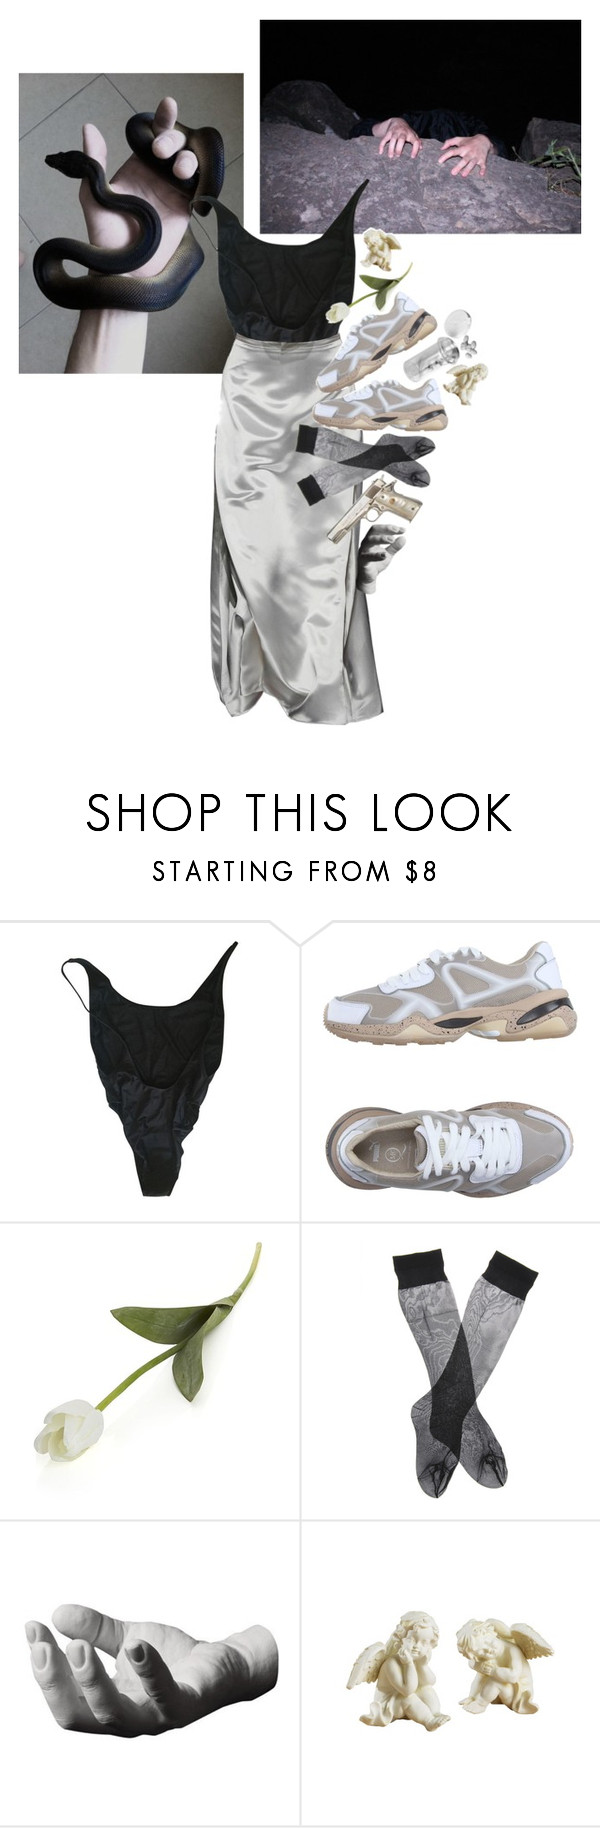 """""""how'd the lawsuit go?"""" by dadslut ❤ liked on Polyvore featuring American Apparel, Puma, Crate and Barrel, Atlantis and Harry Allen"""